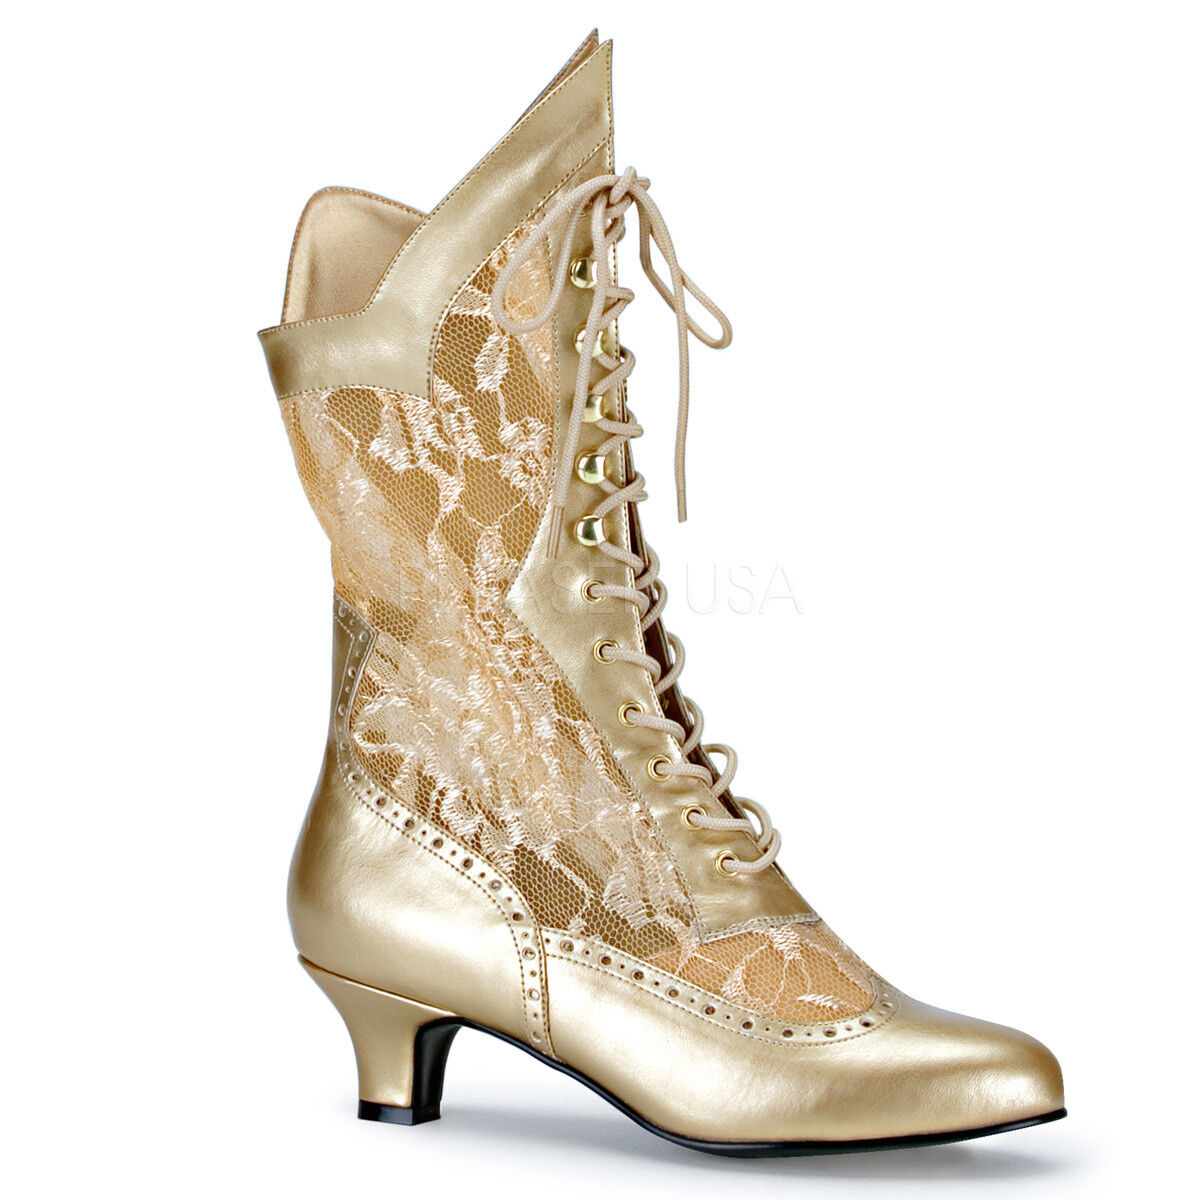 Victorian Steampunk Bridal Pioneer Burlesque Kitten Heels gold Lace Up Boots